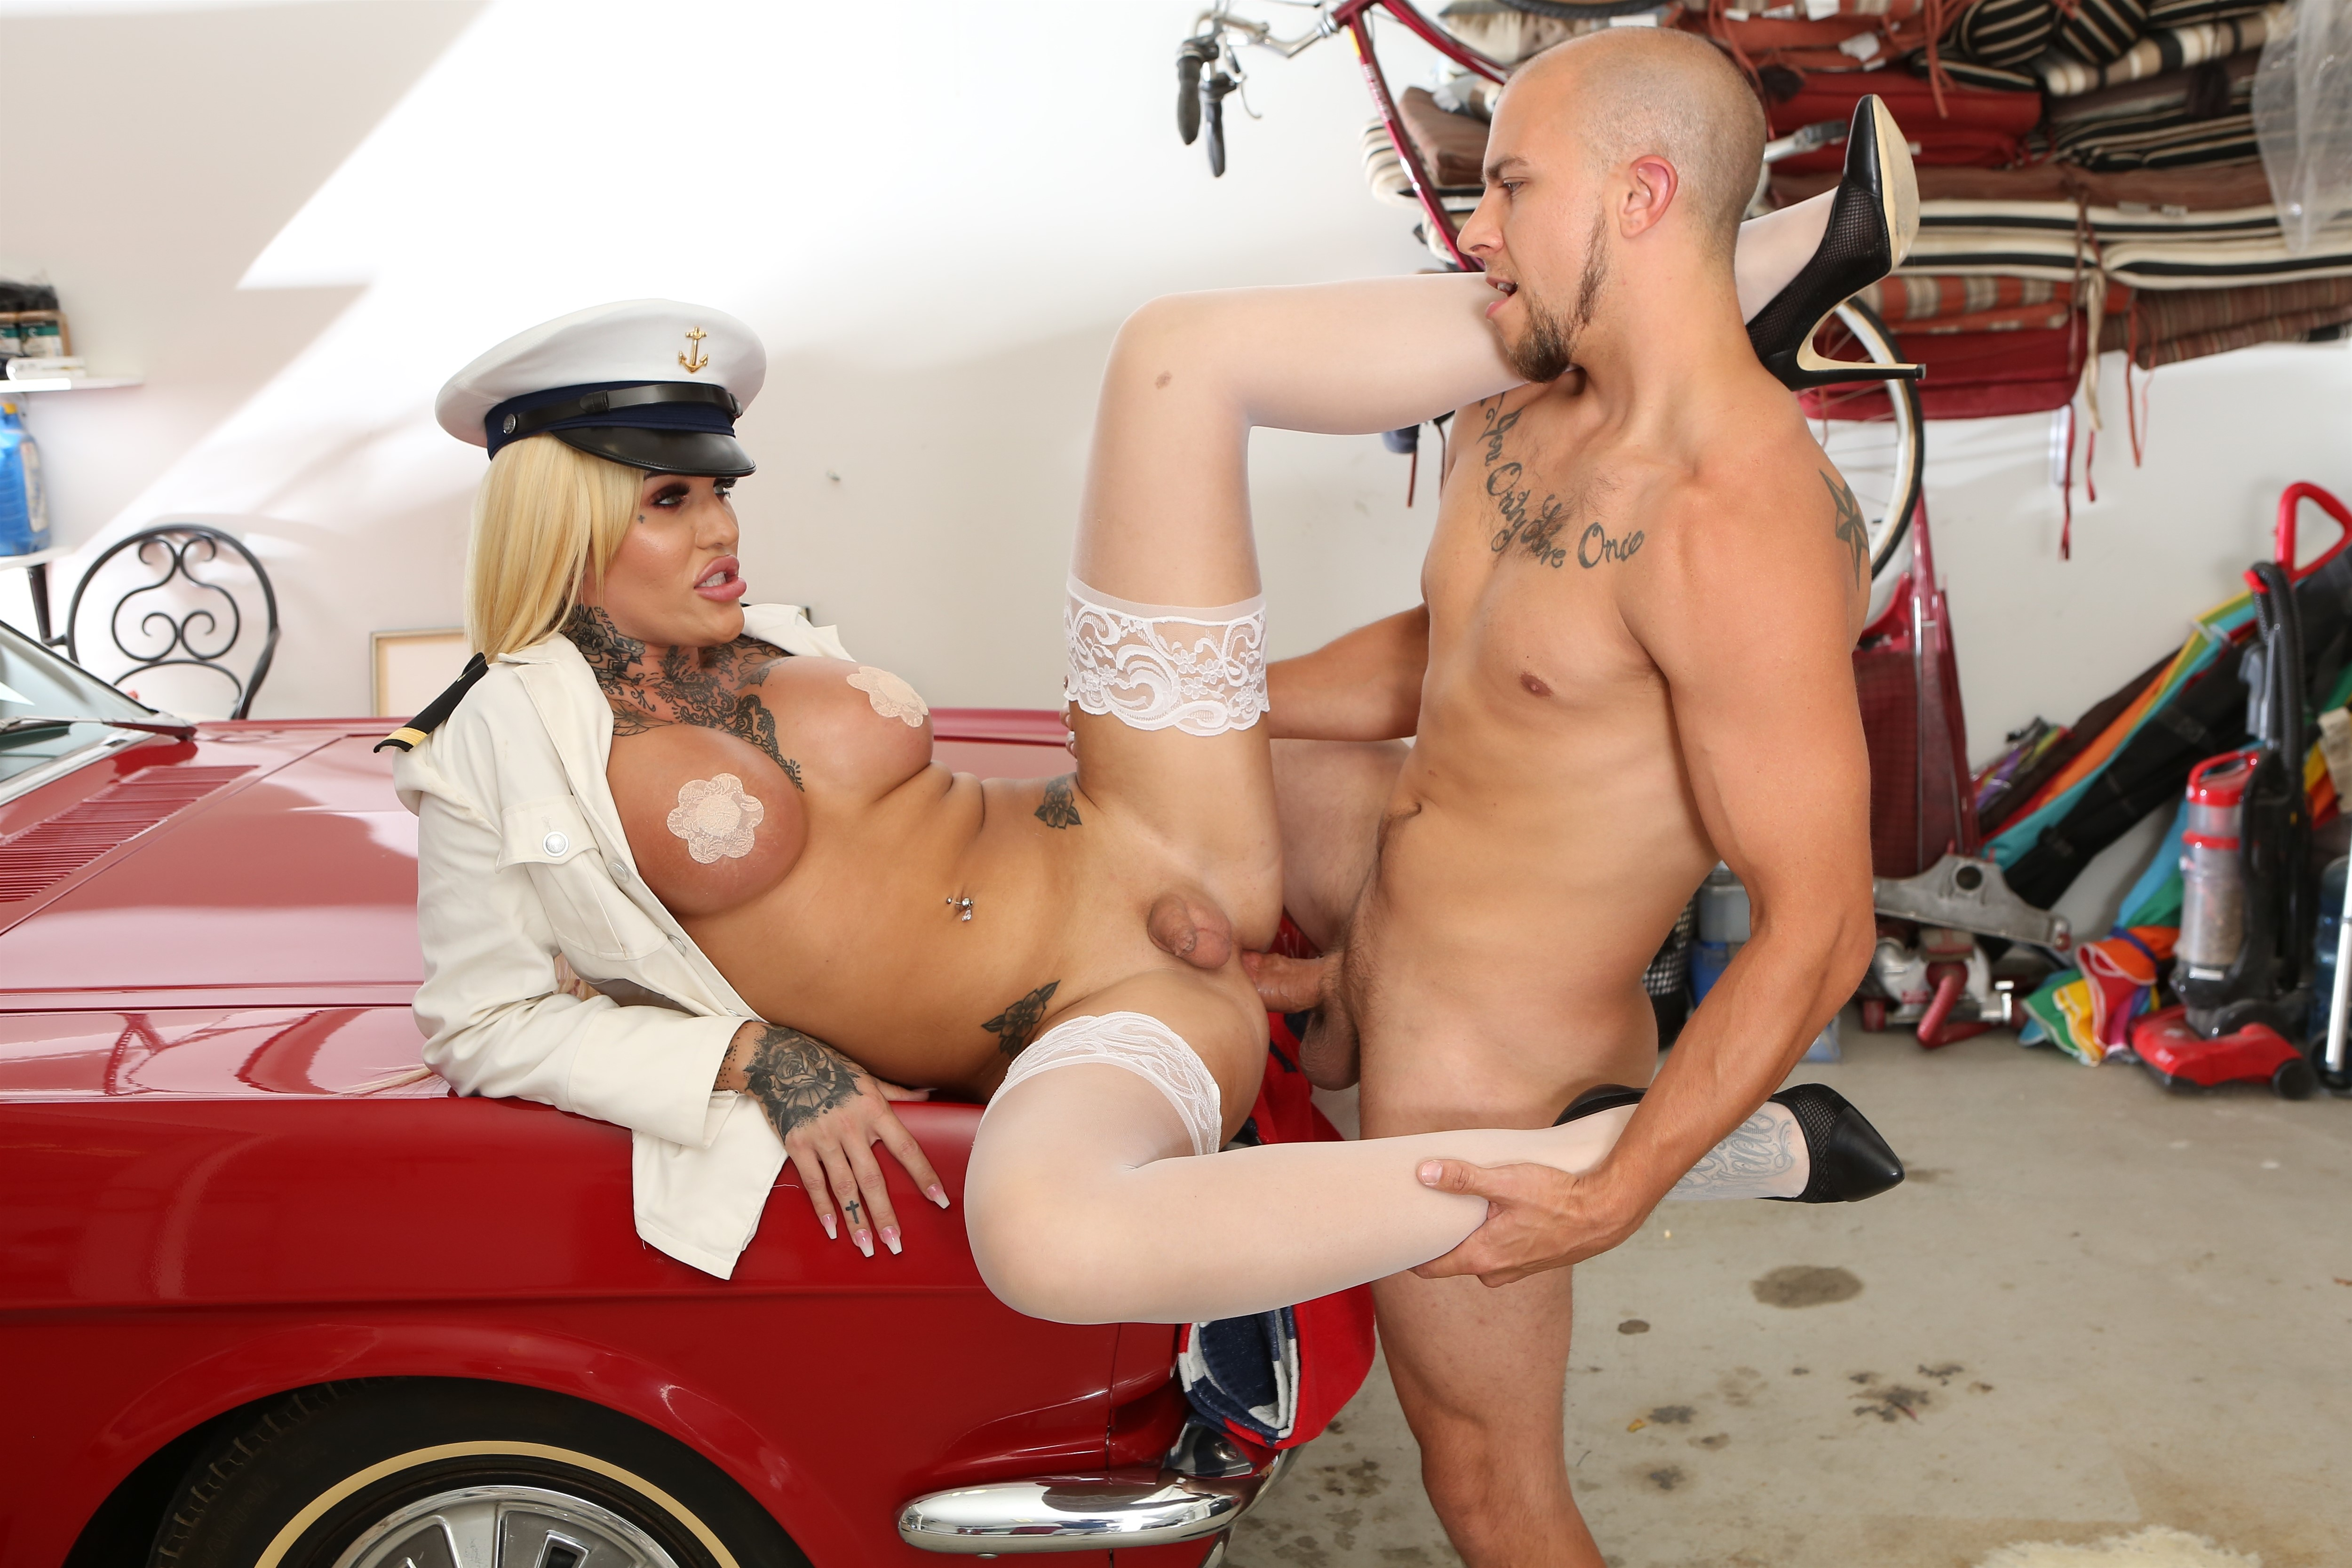 Shemale sissy cd cum without hands porn photo, duration